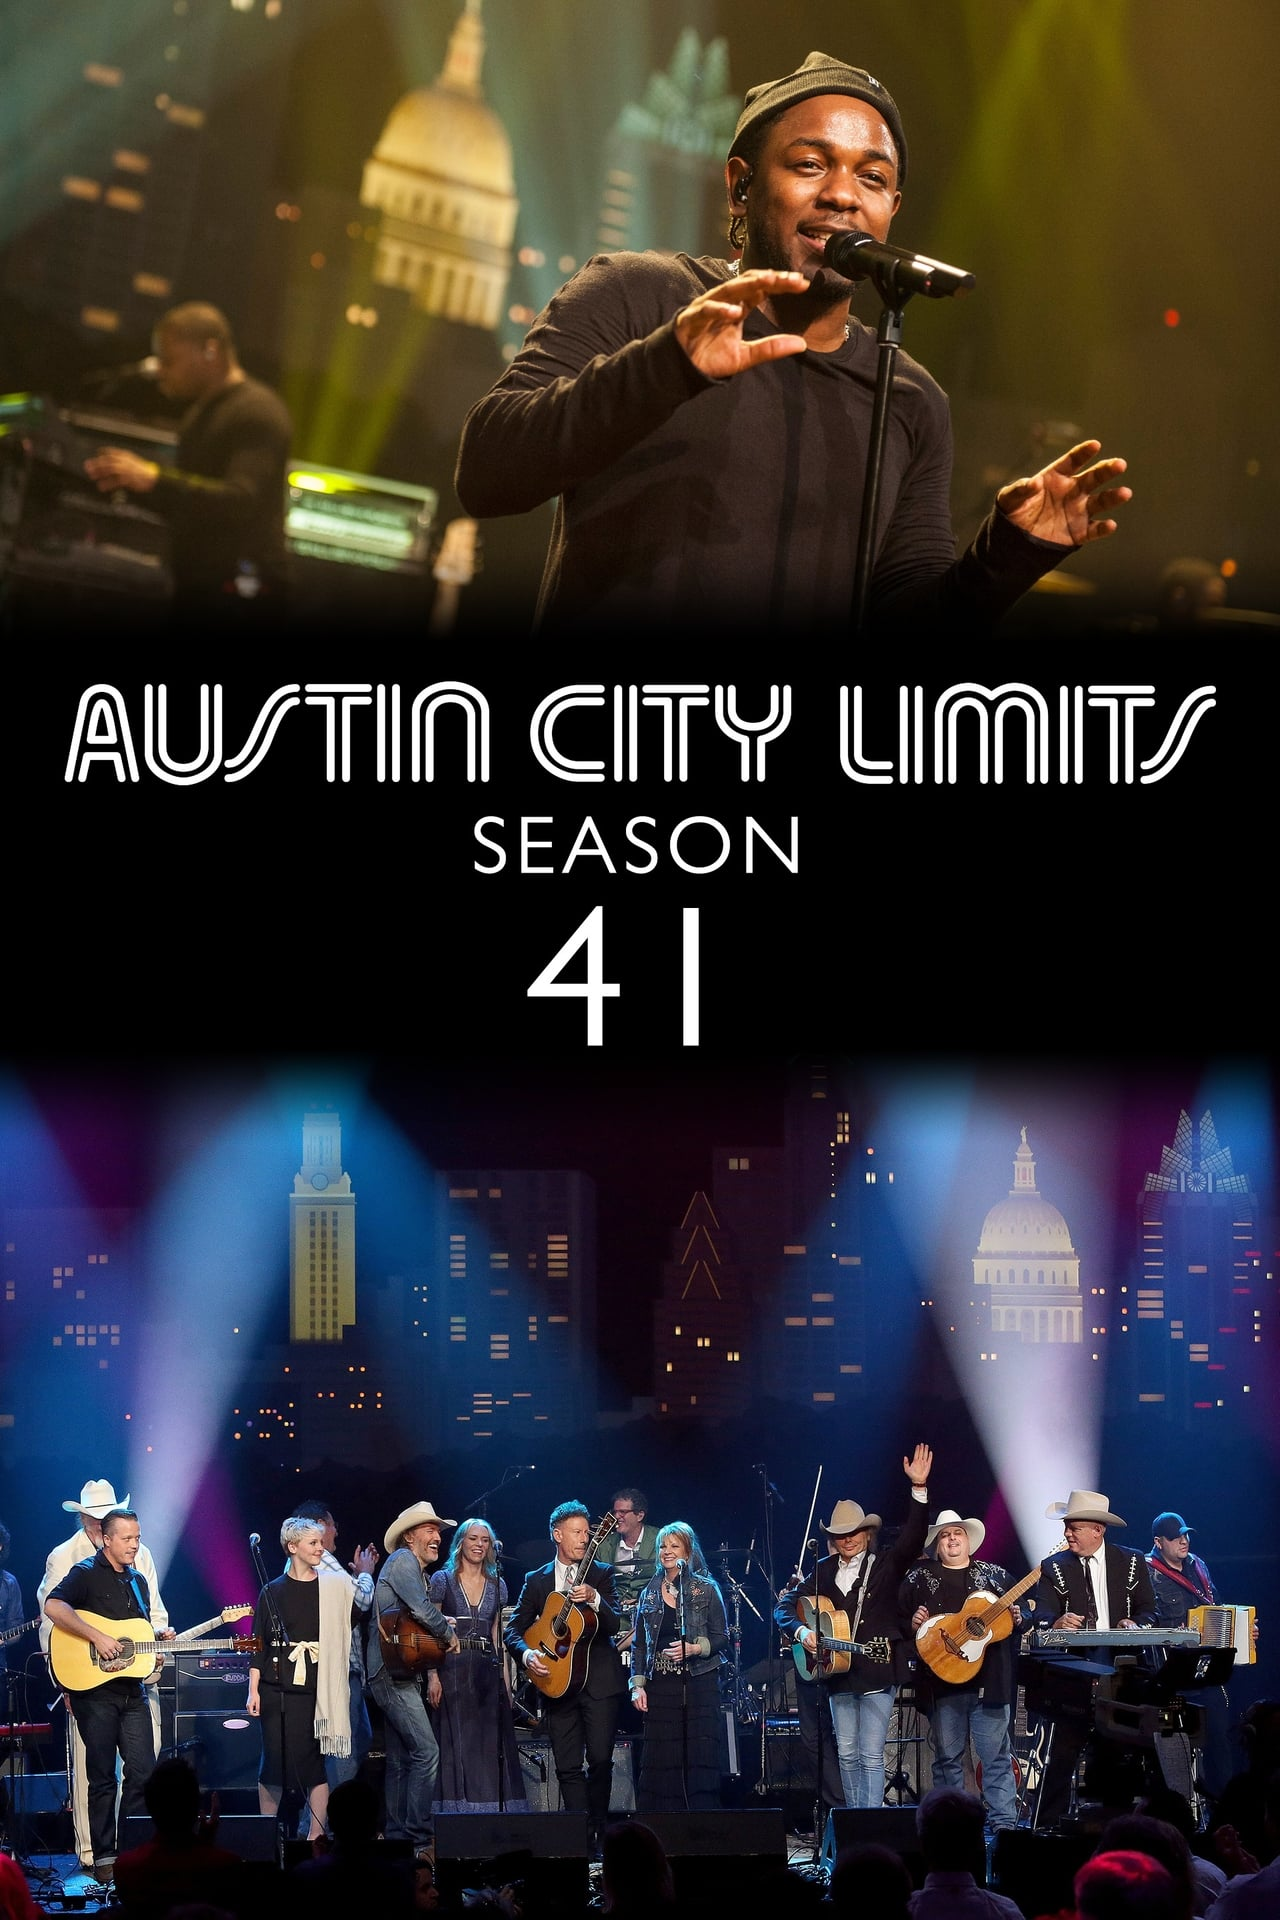 Putlocker Austin City Limits Season 41 (2015)